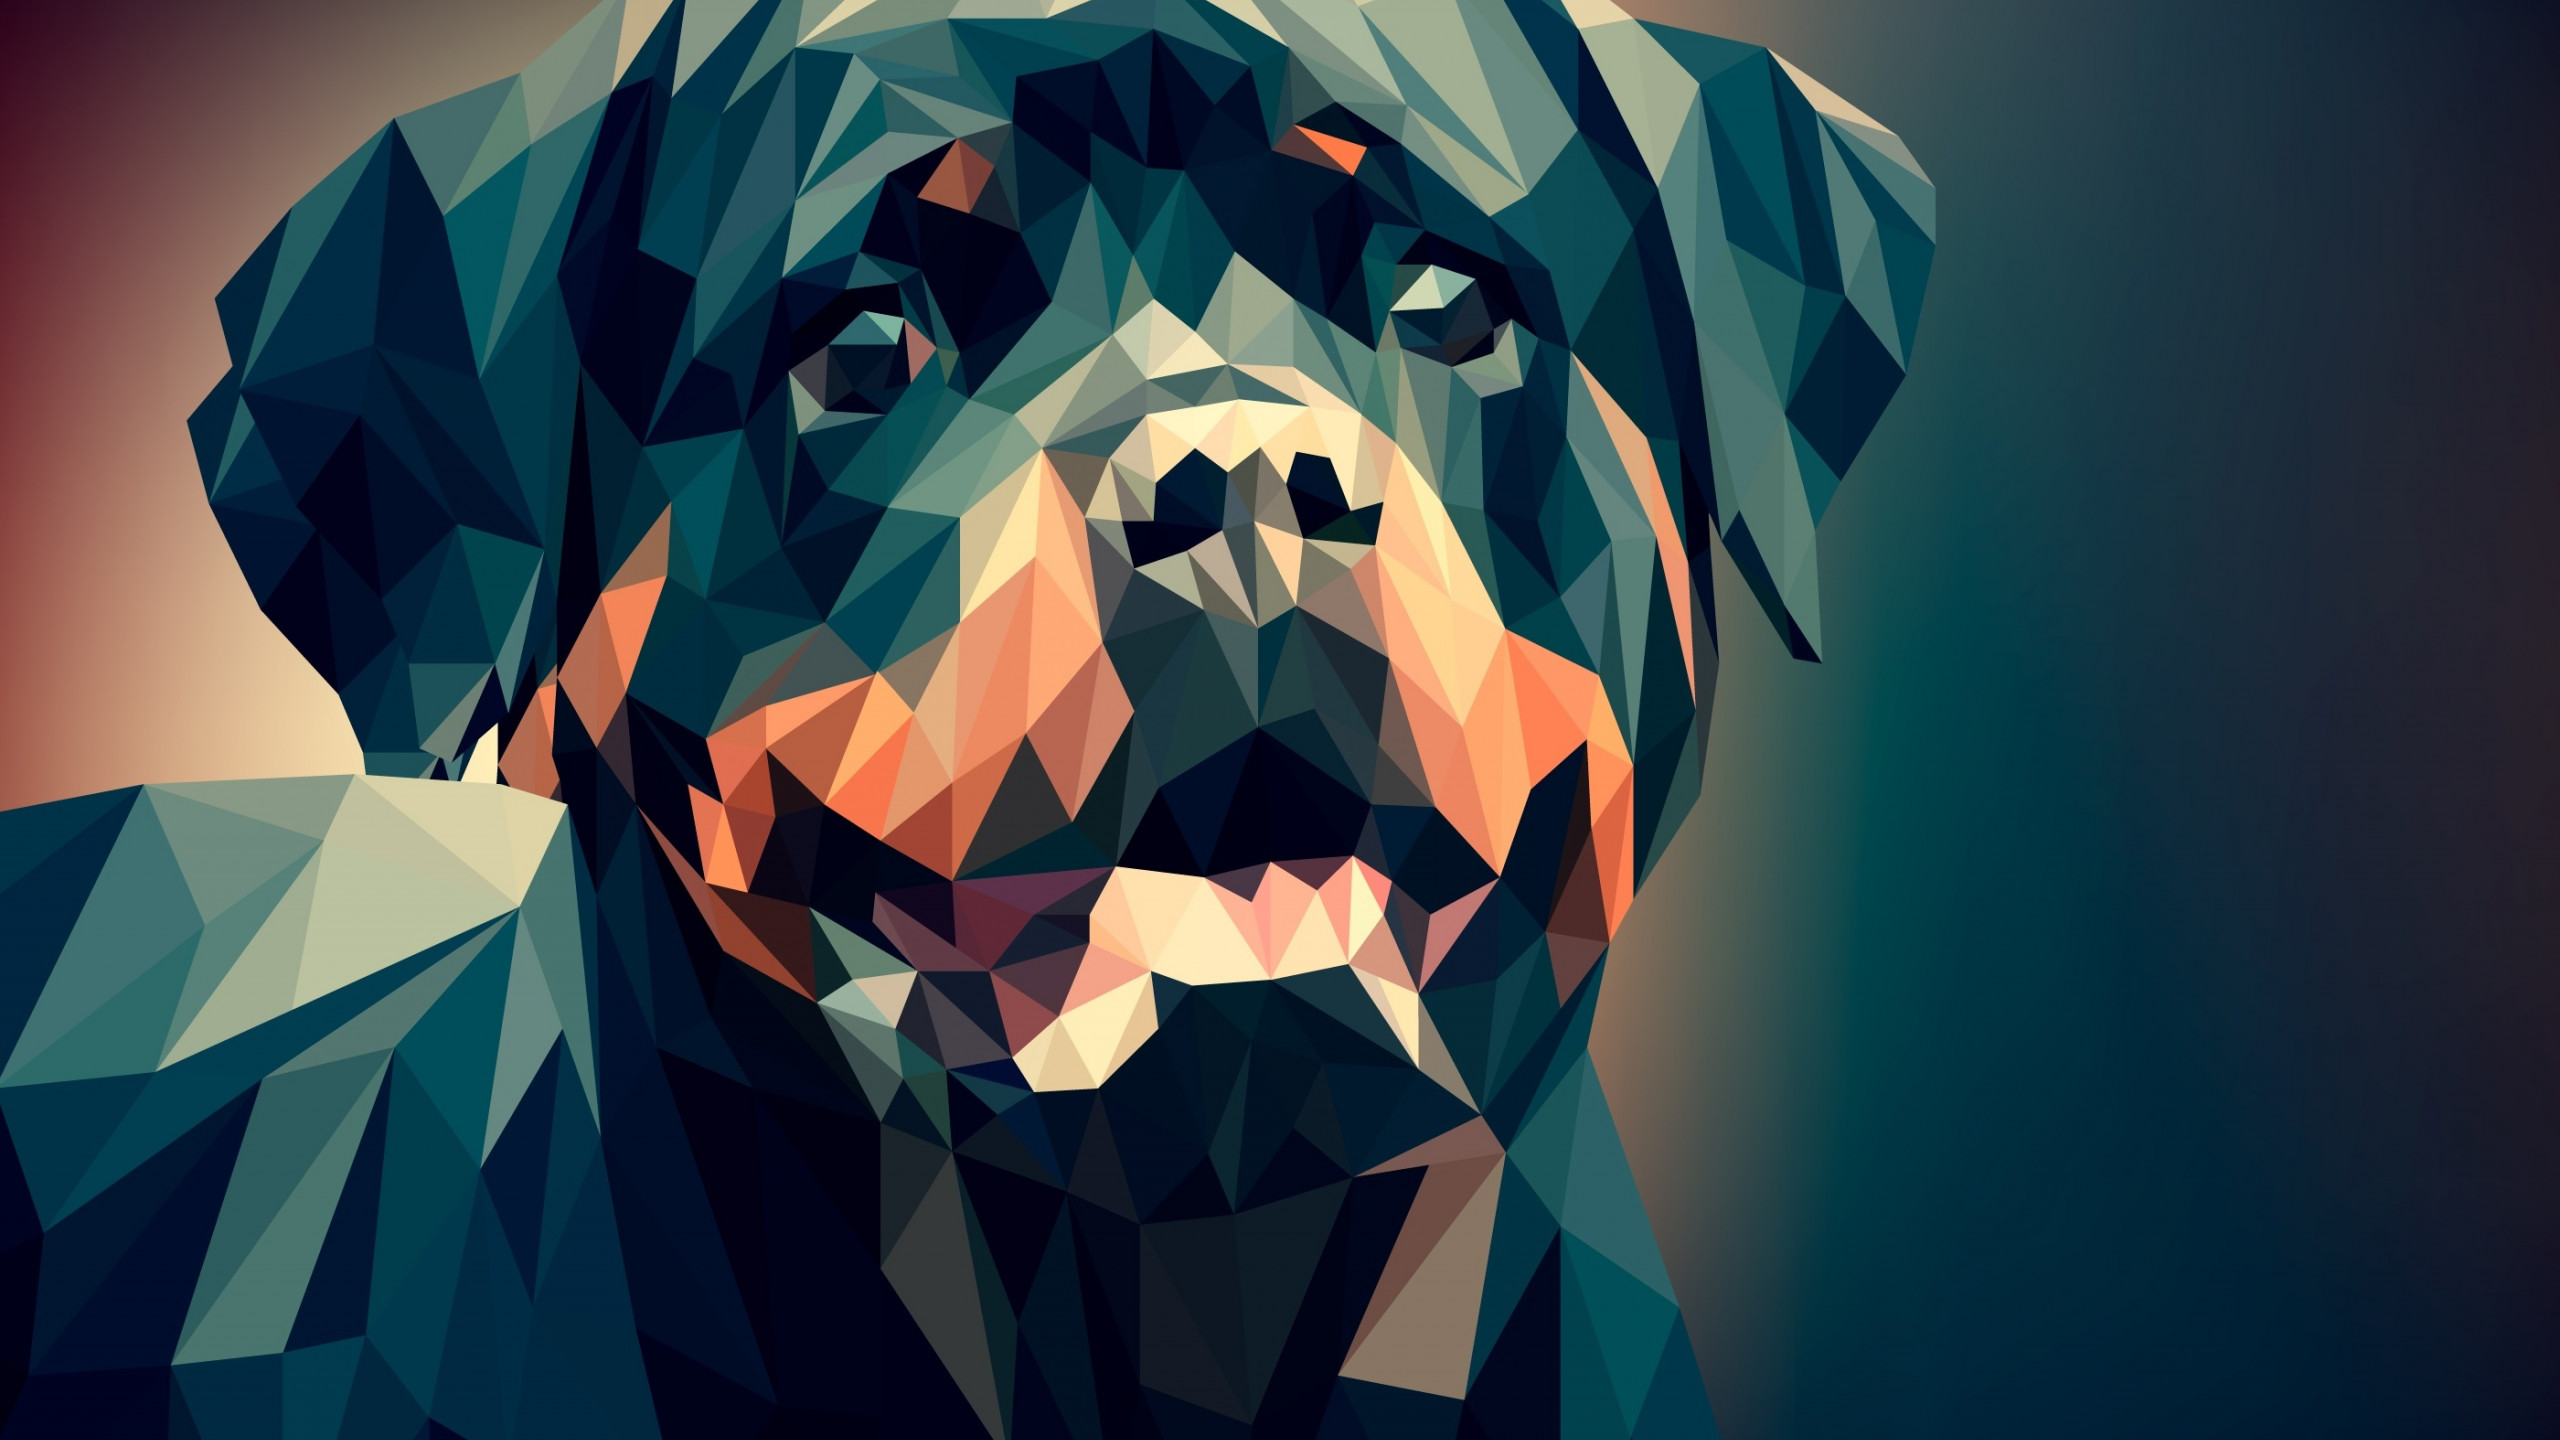 Low Poly Illustration: Rottweiler wallpaper 2560x1440